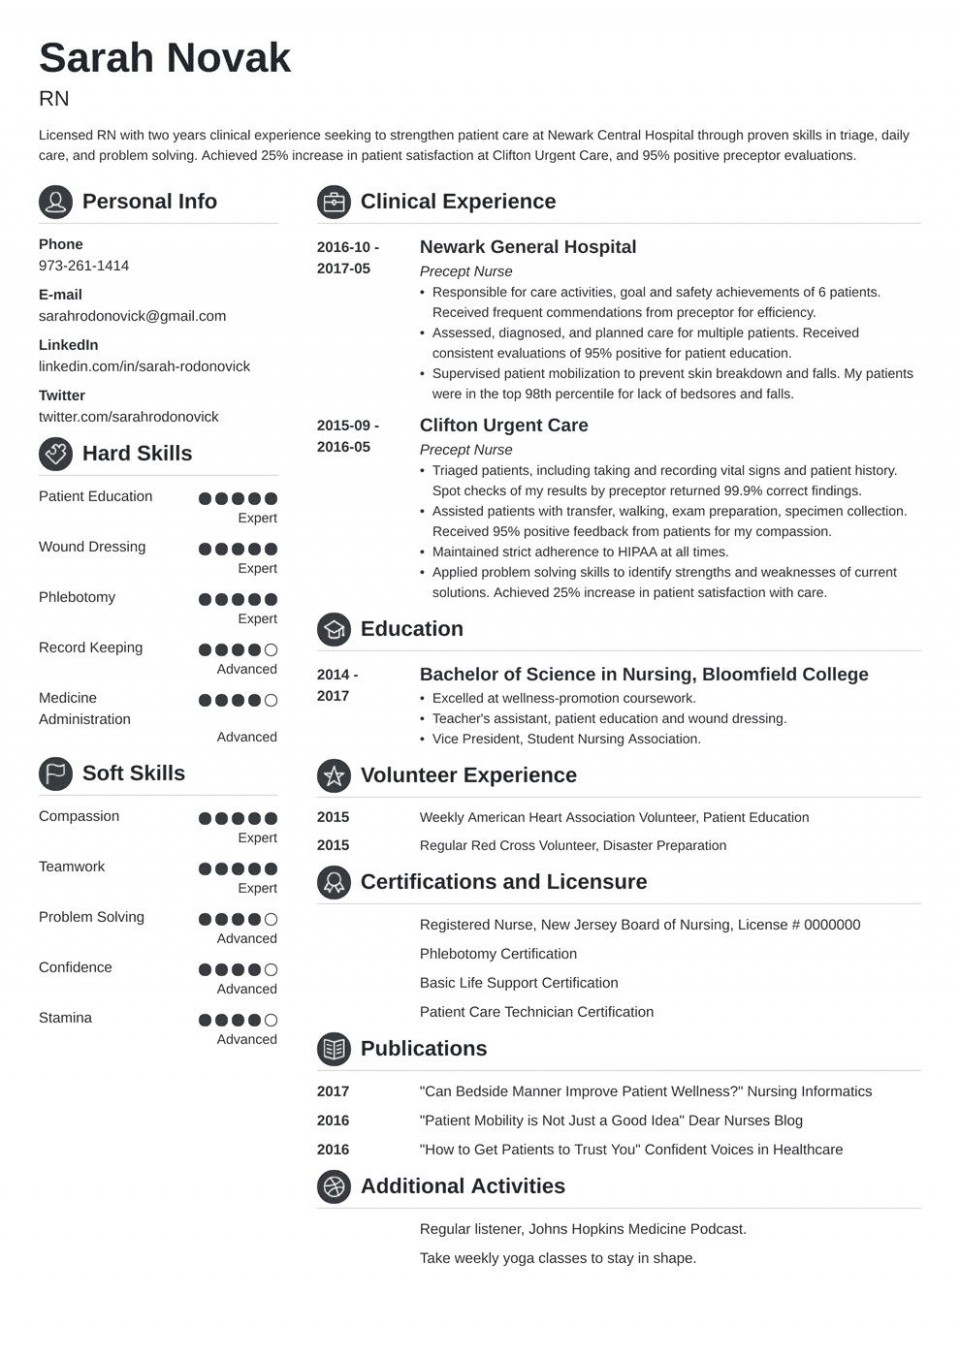 007 Marvelou New Grad Nursing Resume Template Photo  Nurse Graduate Practitioner960